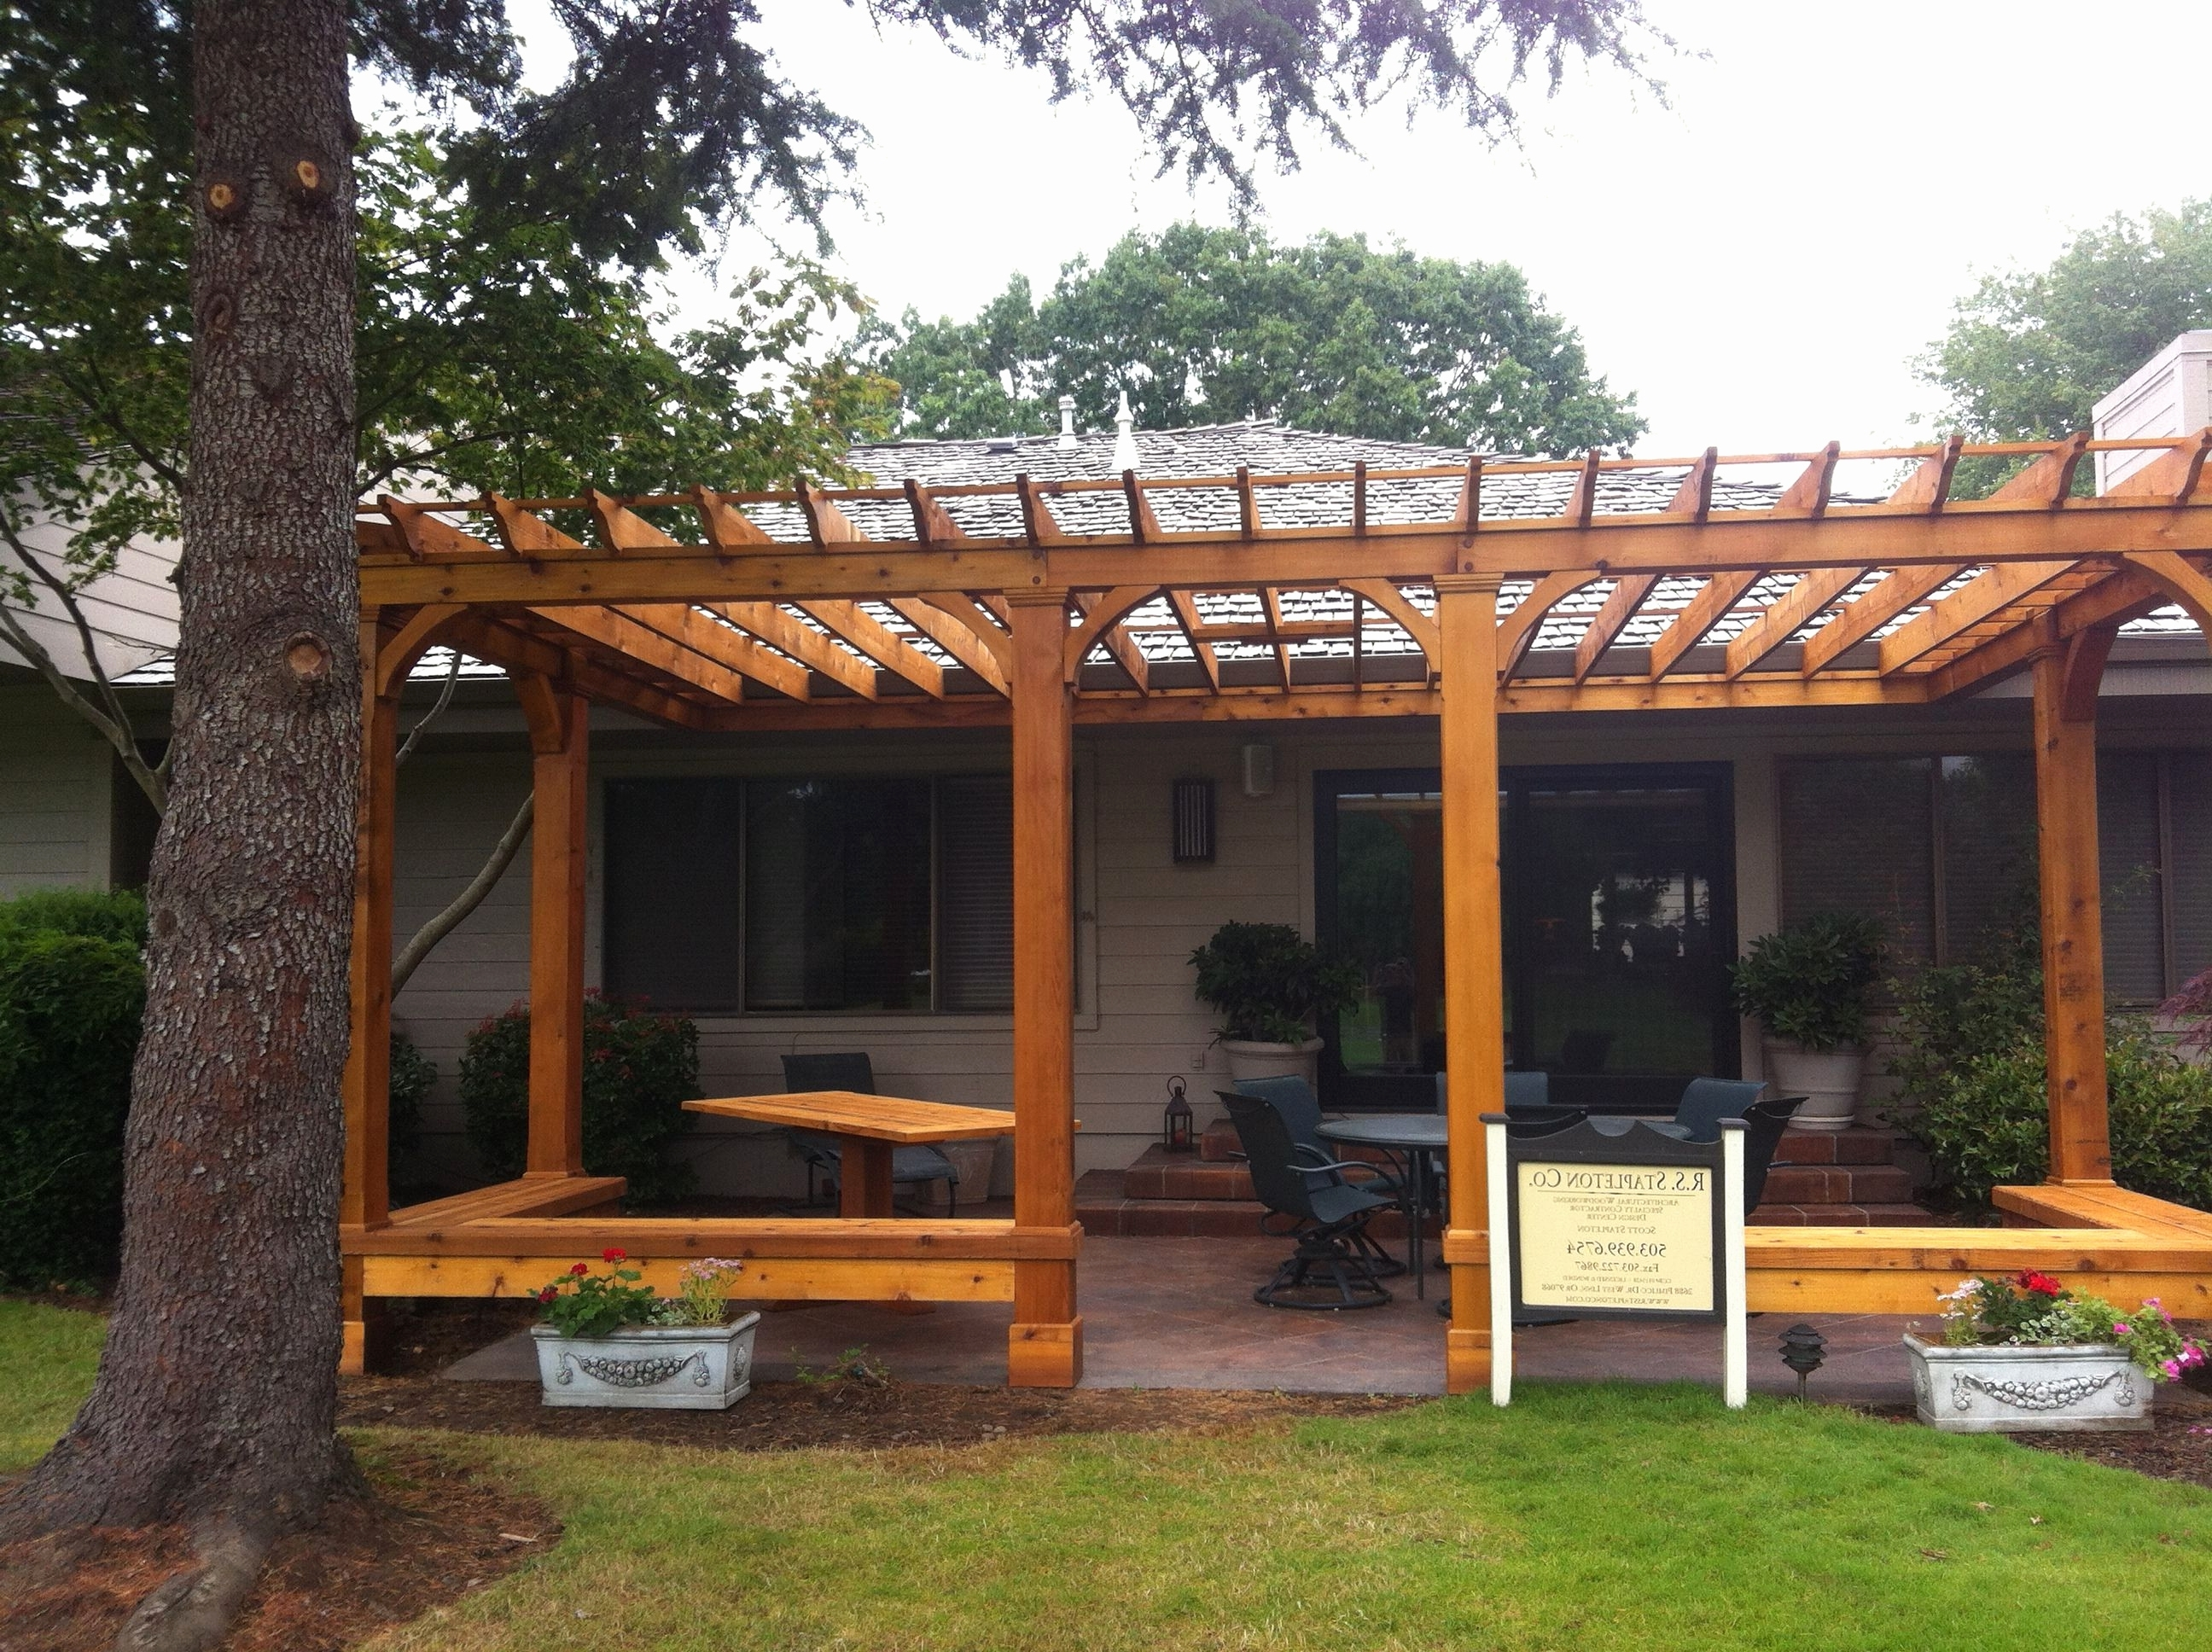 2018 Outdoor Ceiling Fan For Gazebo New Cedar Pergola With Built In Bench Pertaining To Outdoor Ceiling Fans For Pergola (Gallery 8 of 20)